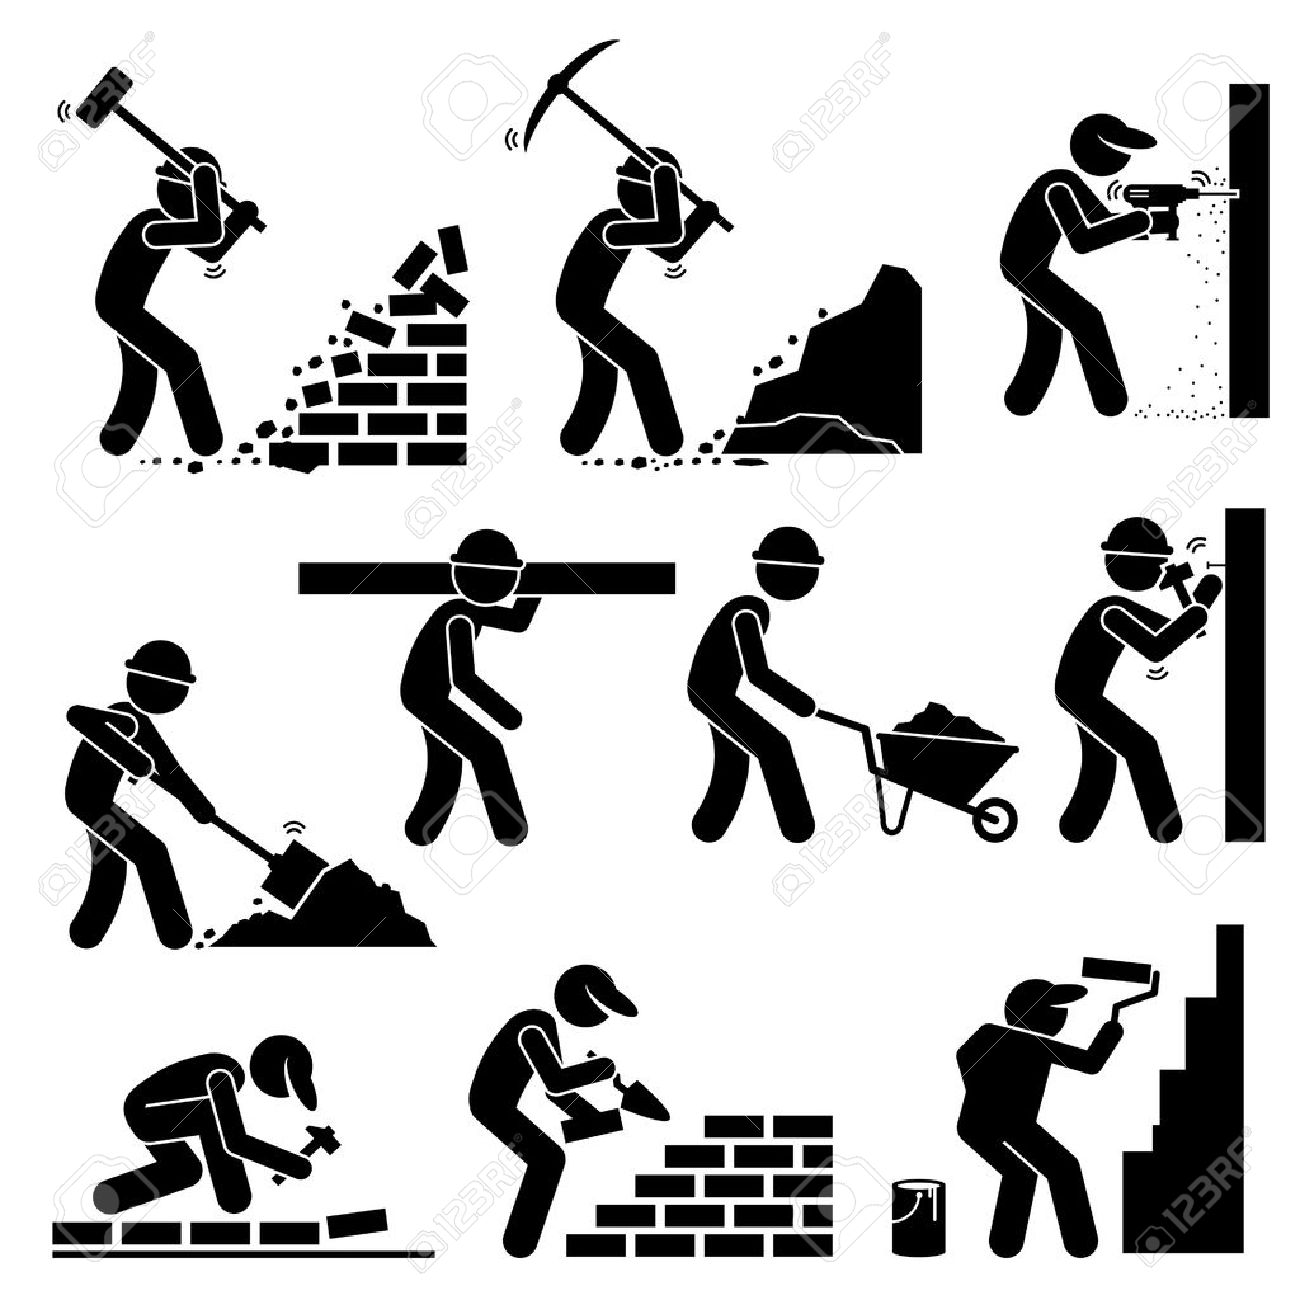 Builders Constructors Workers Building Houses with Tools and Equipment at Construction Site - 53802611